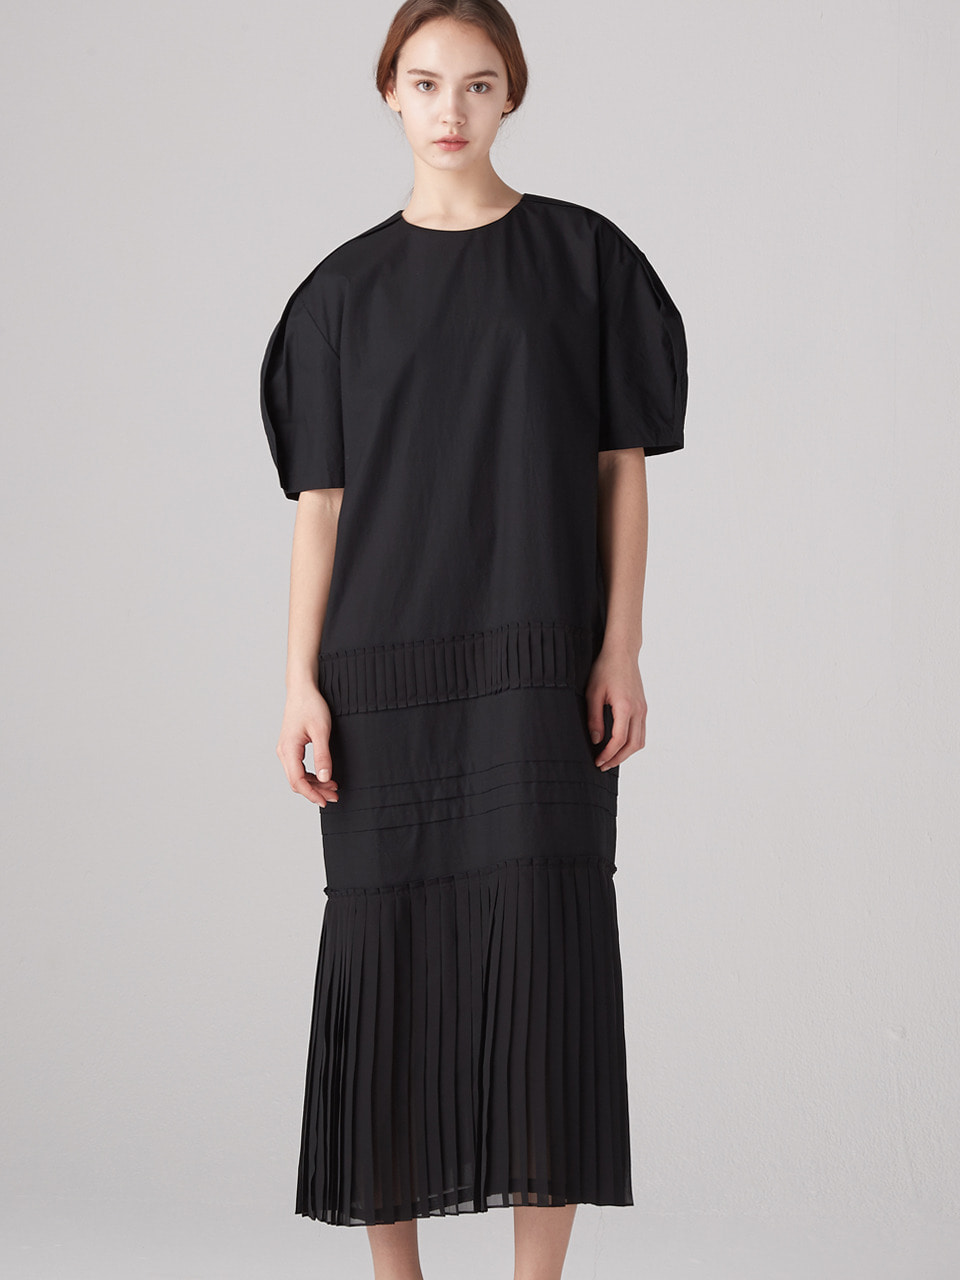 Muse pleats dress - Black